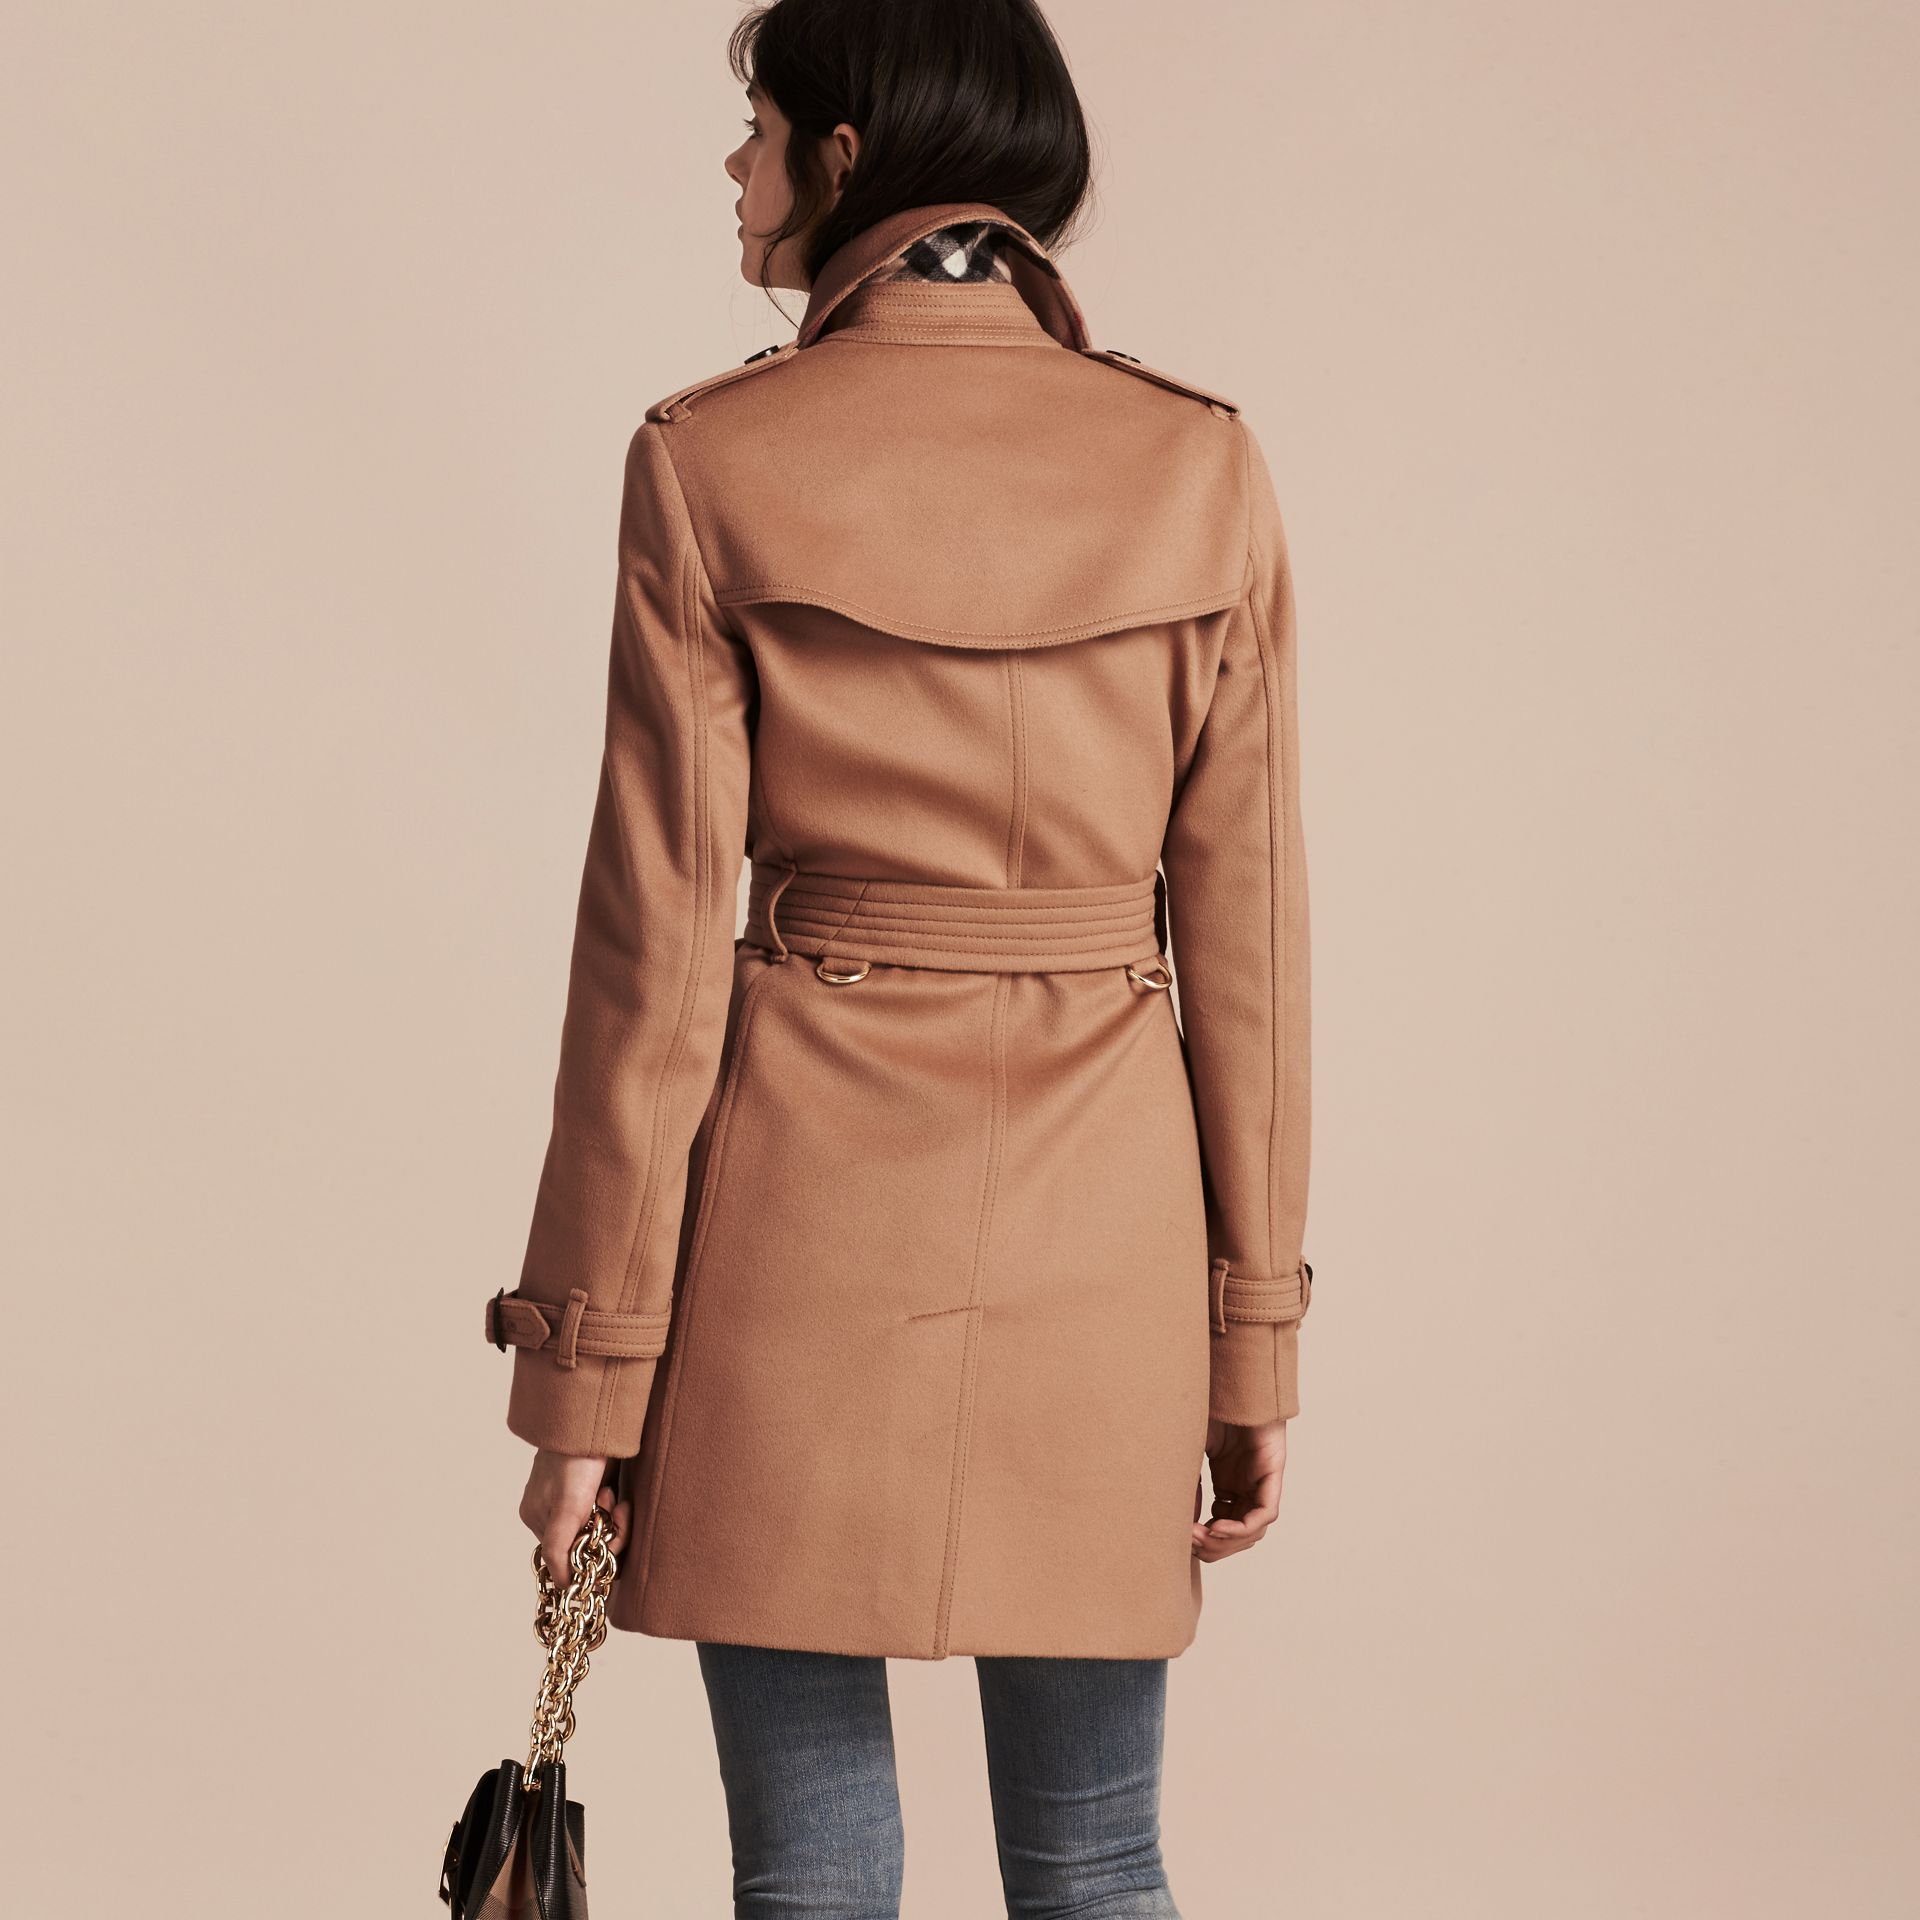 Wool Cashmere Trench Coat in Camel - Women | Burberry Canada - gallery image 3